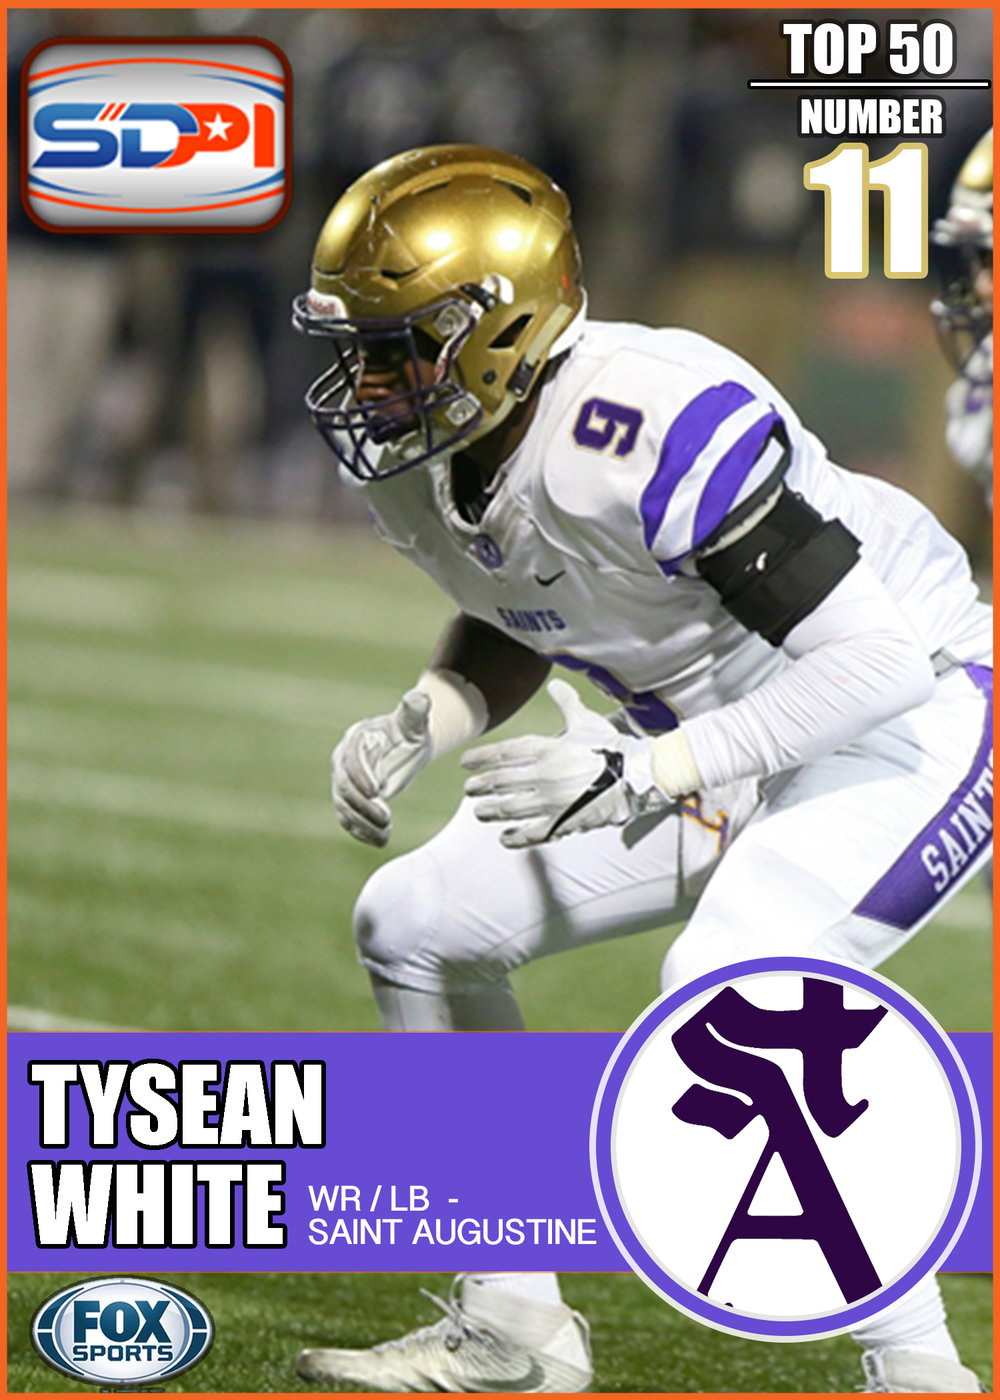 - As the third head of the monster that is St. Augustine's linebacker corps, Tysean flashes defensive tenacity each time he touches the field. In 2016, he plagued offenses for 9.5 sacks, a forced fumble, and two fumble recoveries, including one that he returned to the house. Ball-carriers be warned: you can run away, but you can't hide from White and his shut-down counterparts this season.